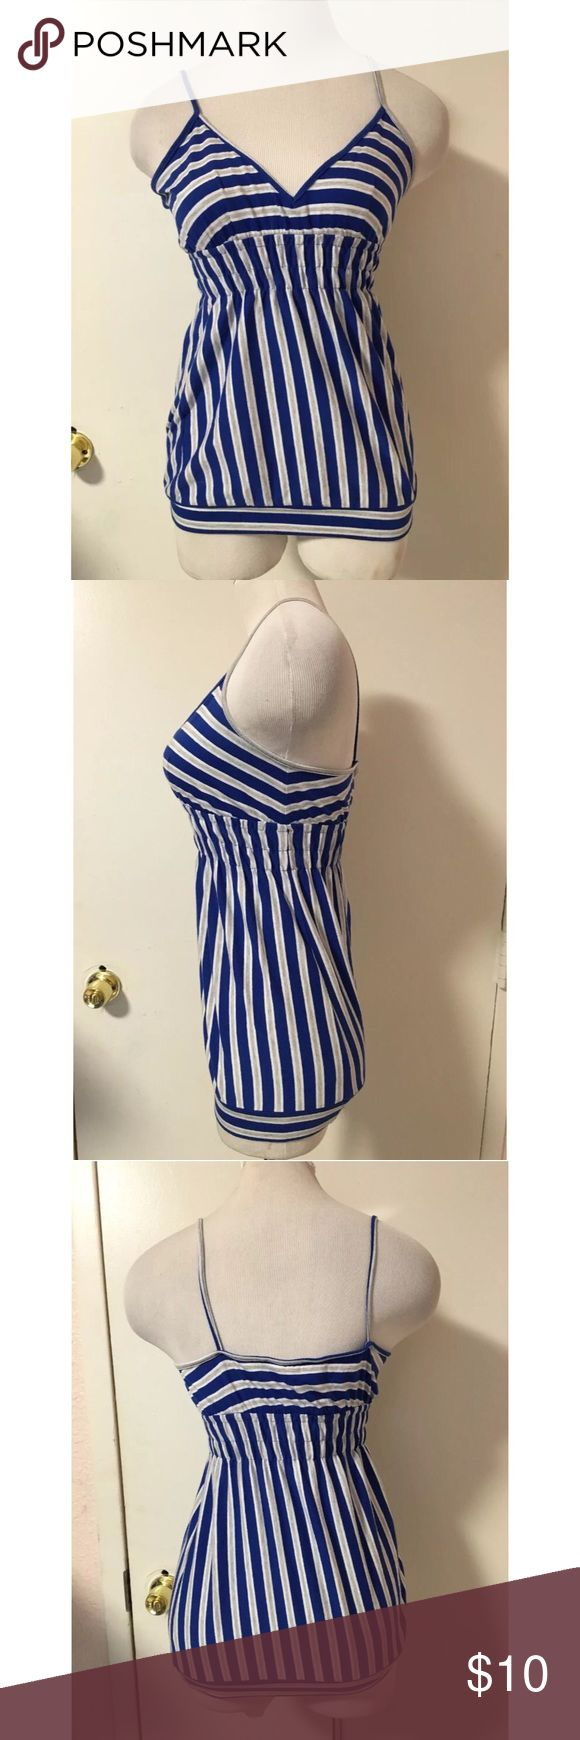 Blue Striped Cami Top Large Previously Owned. In Good Condition. Size: Large Material: 57% Cotton 38% Polyester 5% Spandex Tops Camisoles